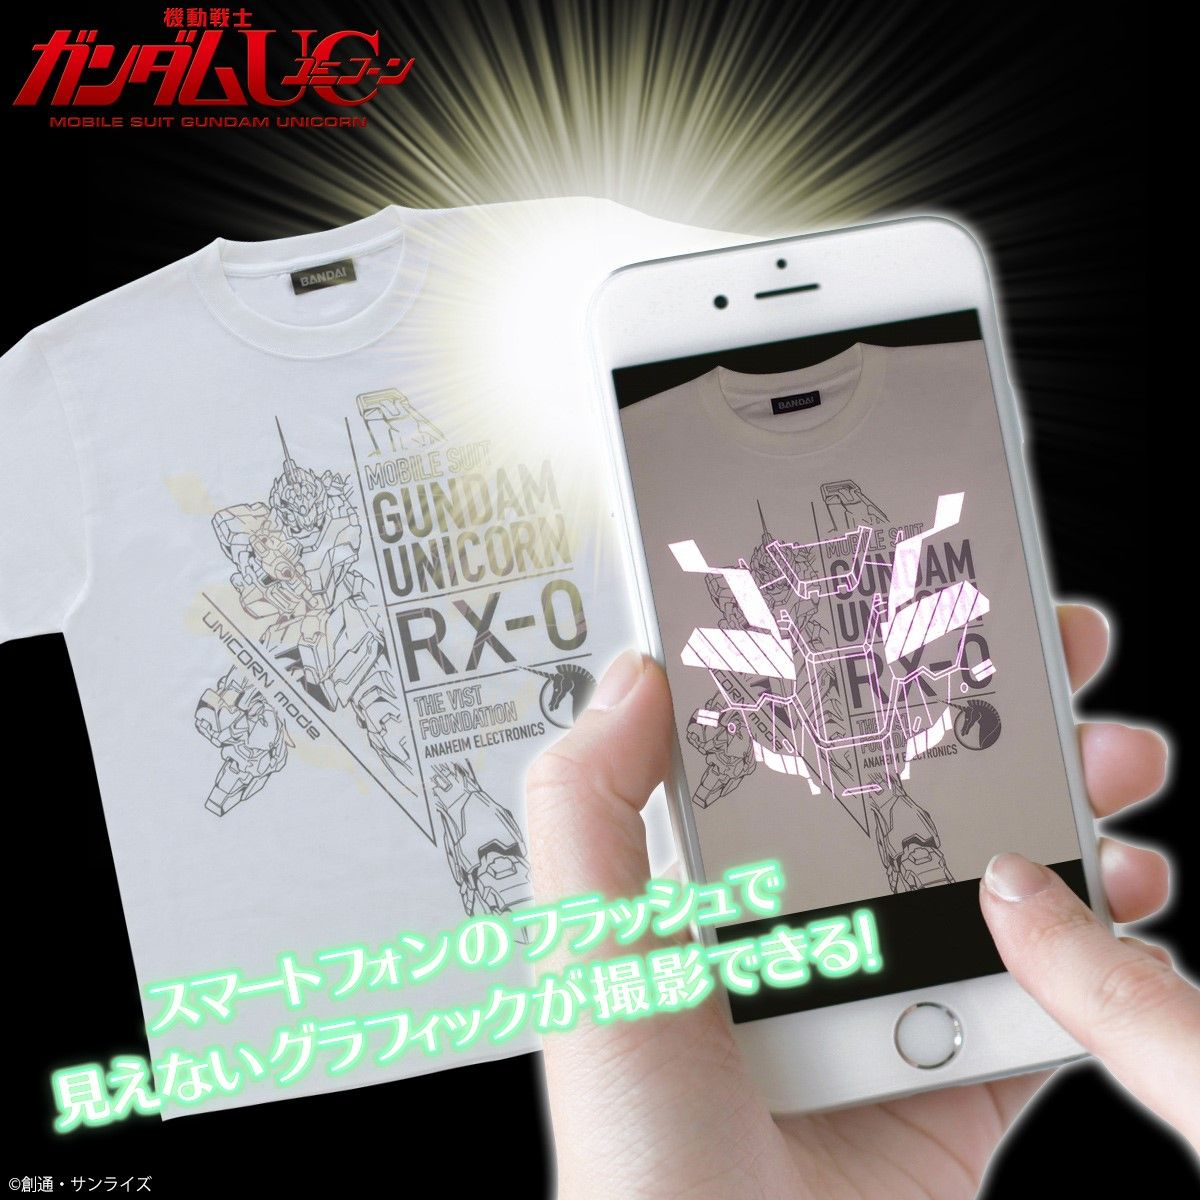 Mobile Suit Gundam Unicorn Secret Image T-shirt